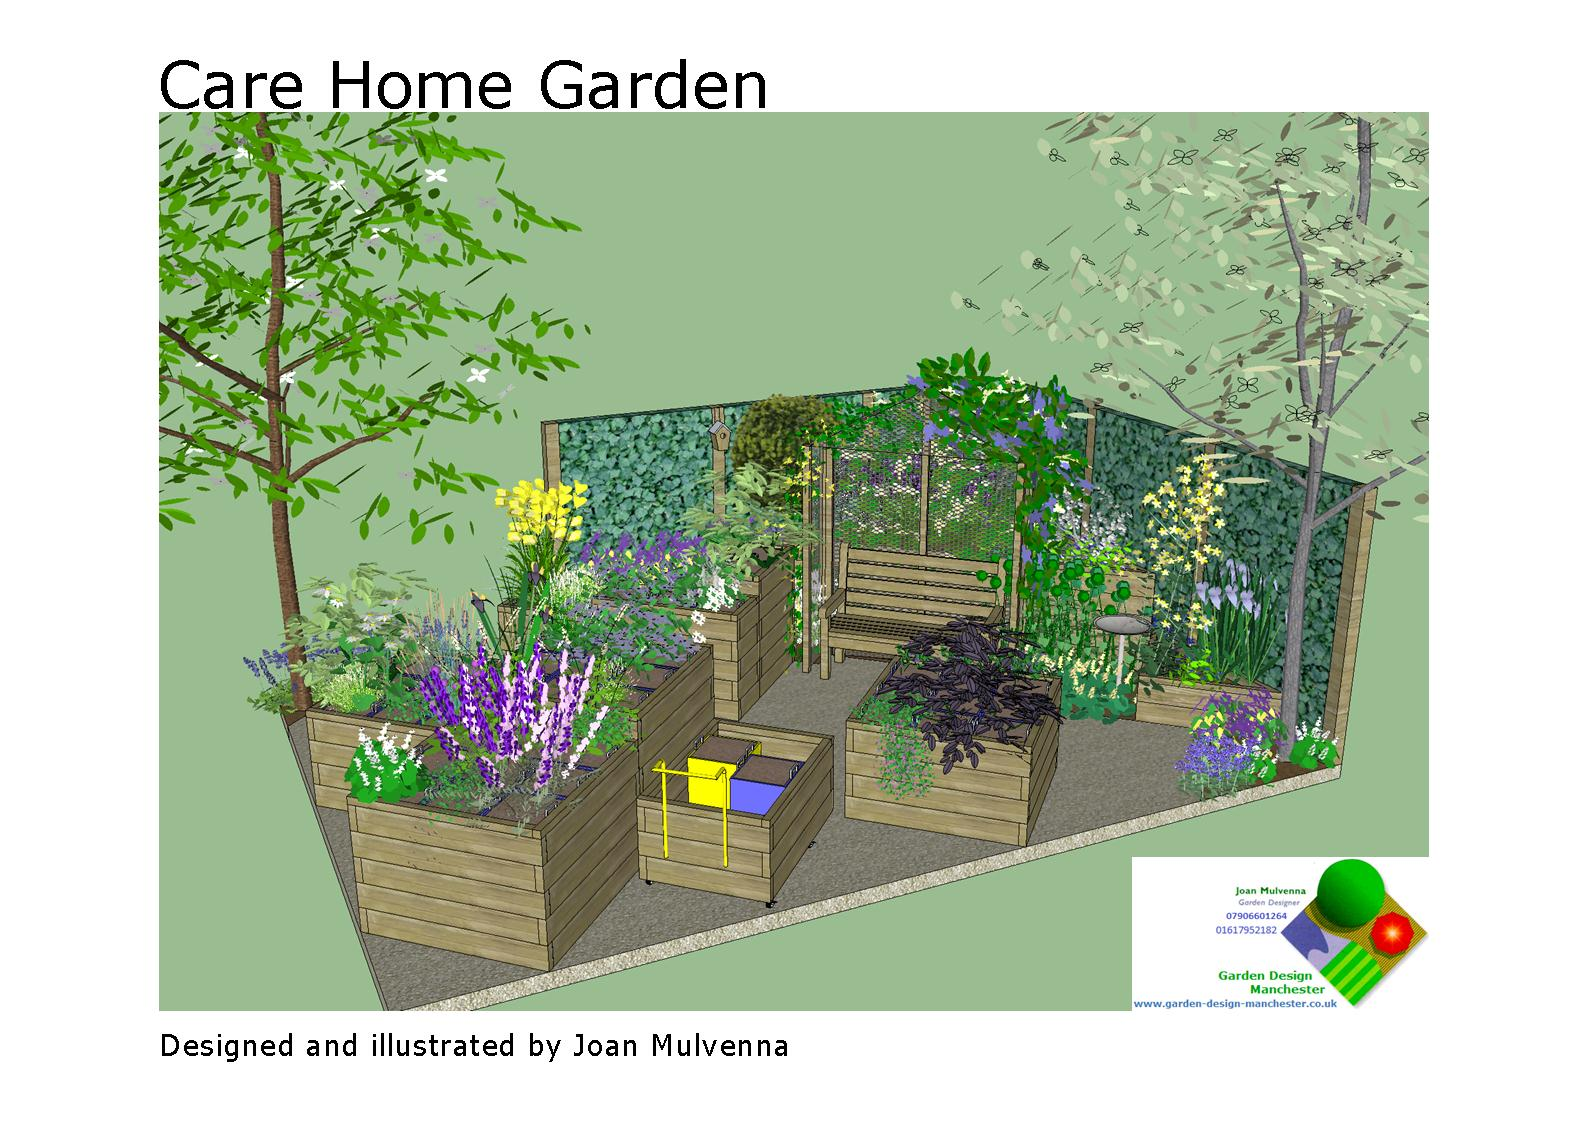 Rhs press office for Home and garden maintenance